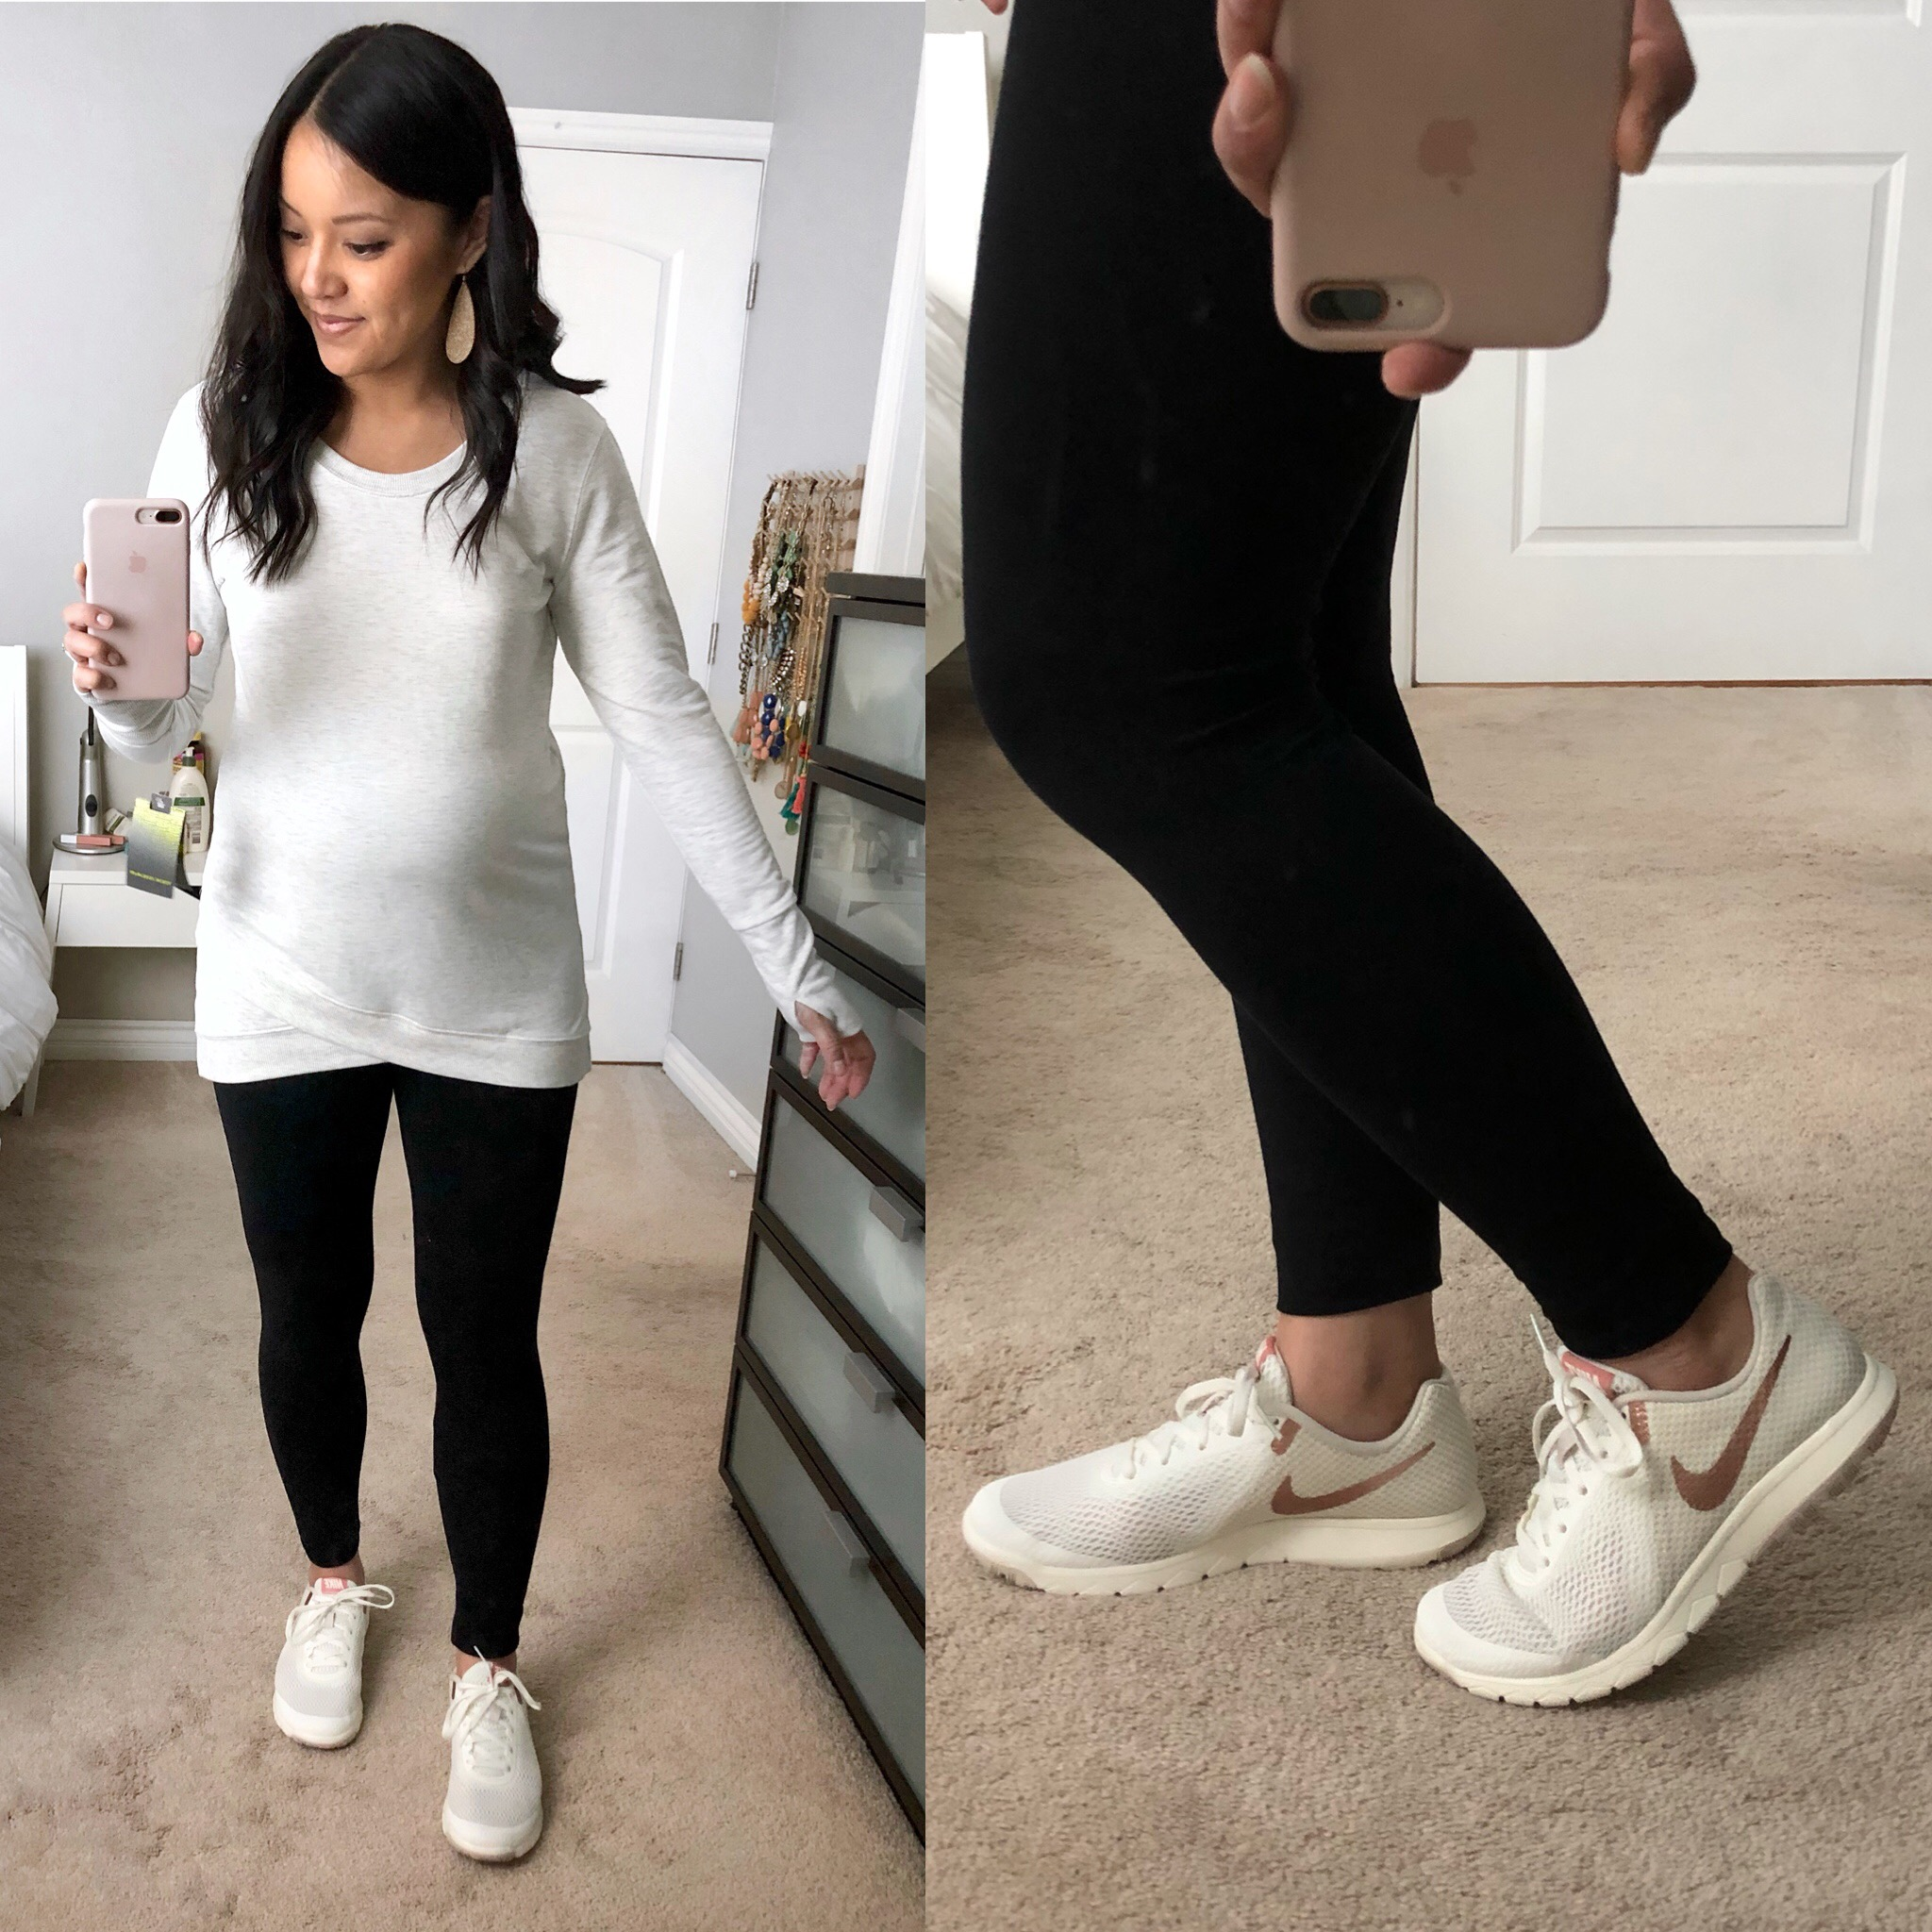 Leggings + White Sneakers + White Activewear Tunic